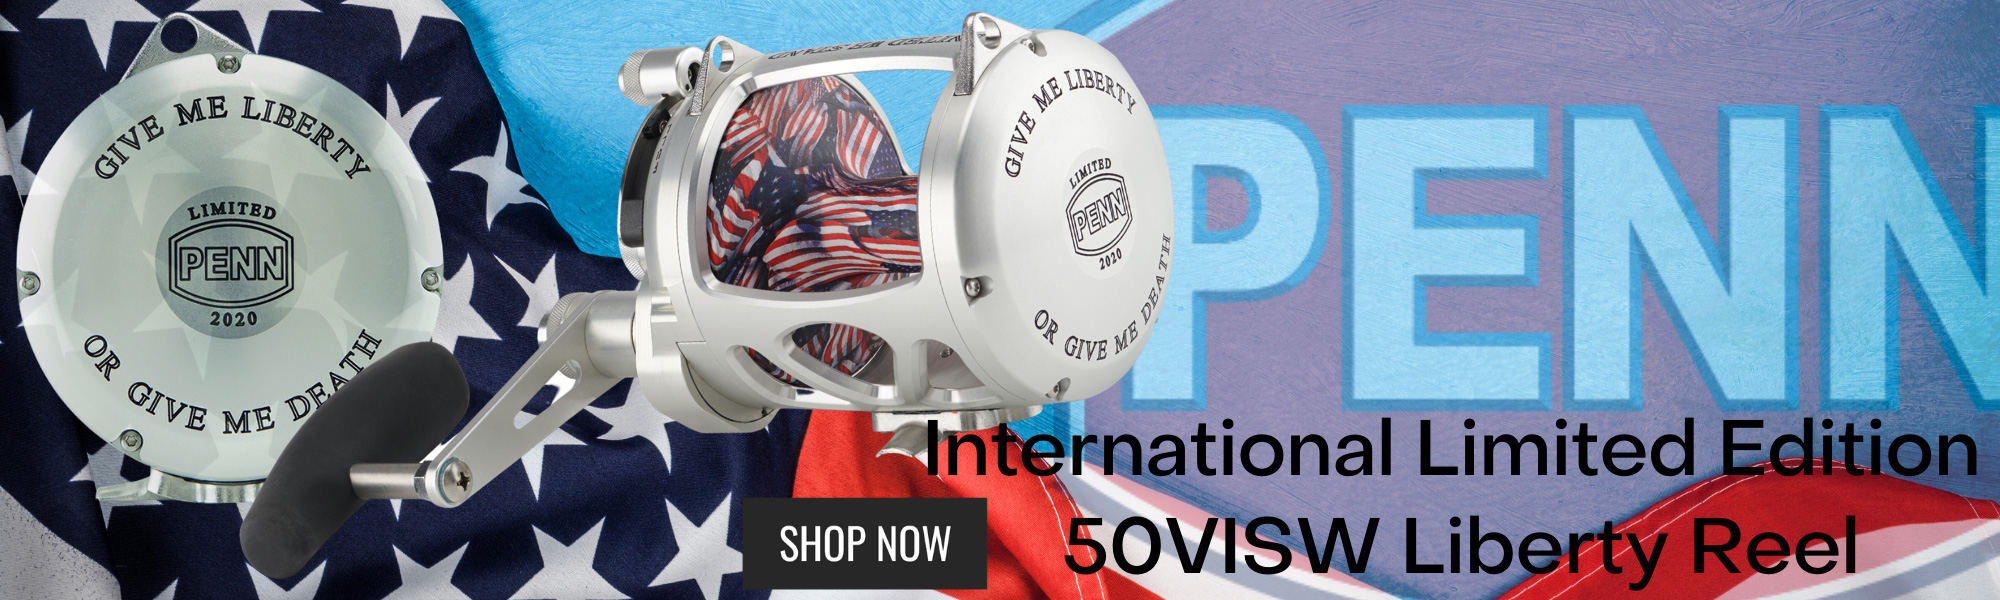 penn international 50 visw limited edition reel